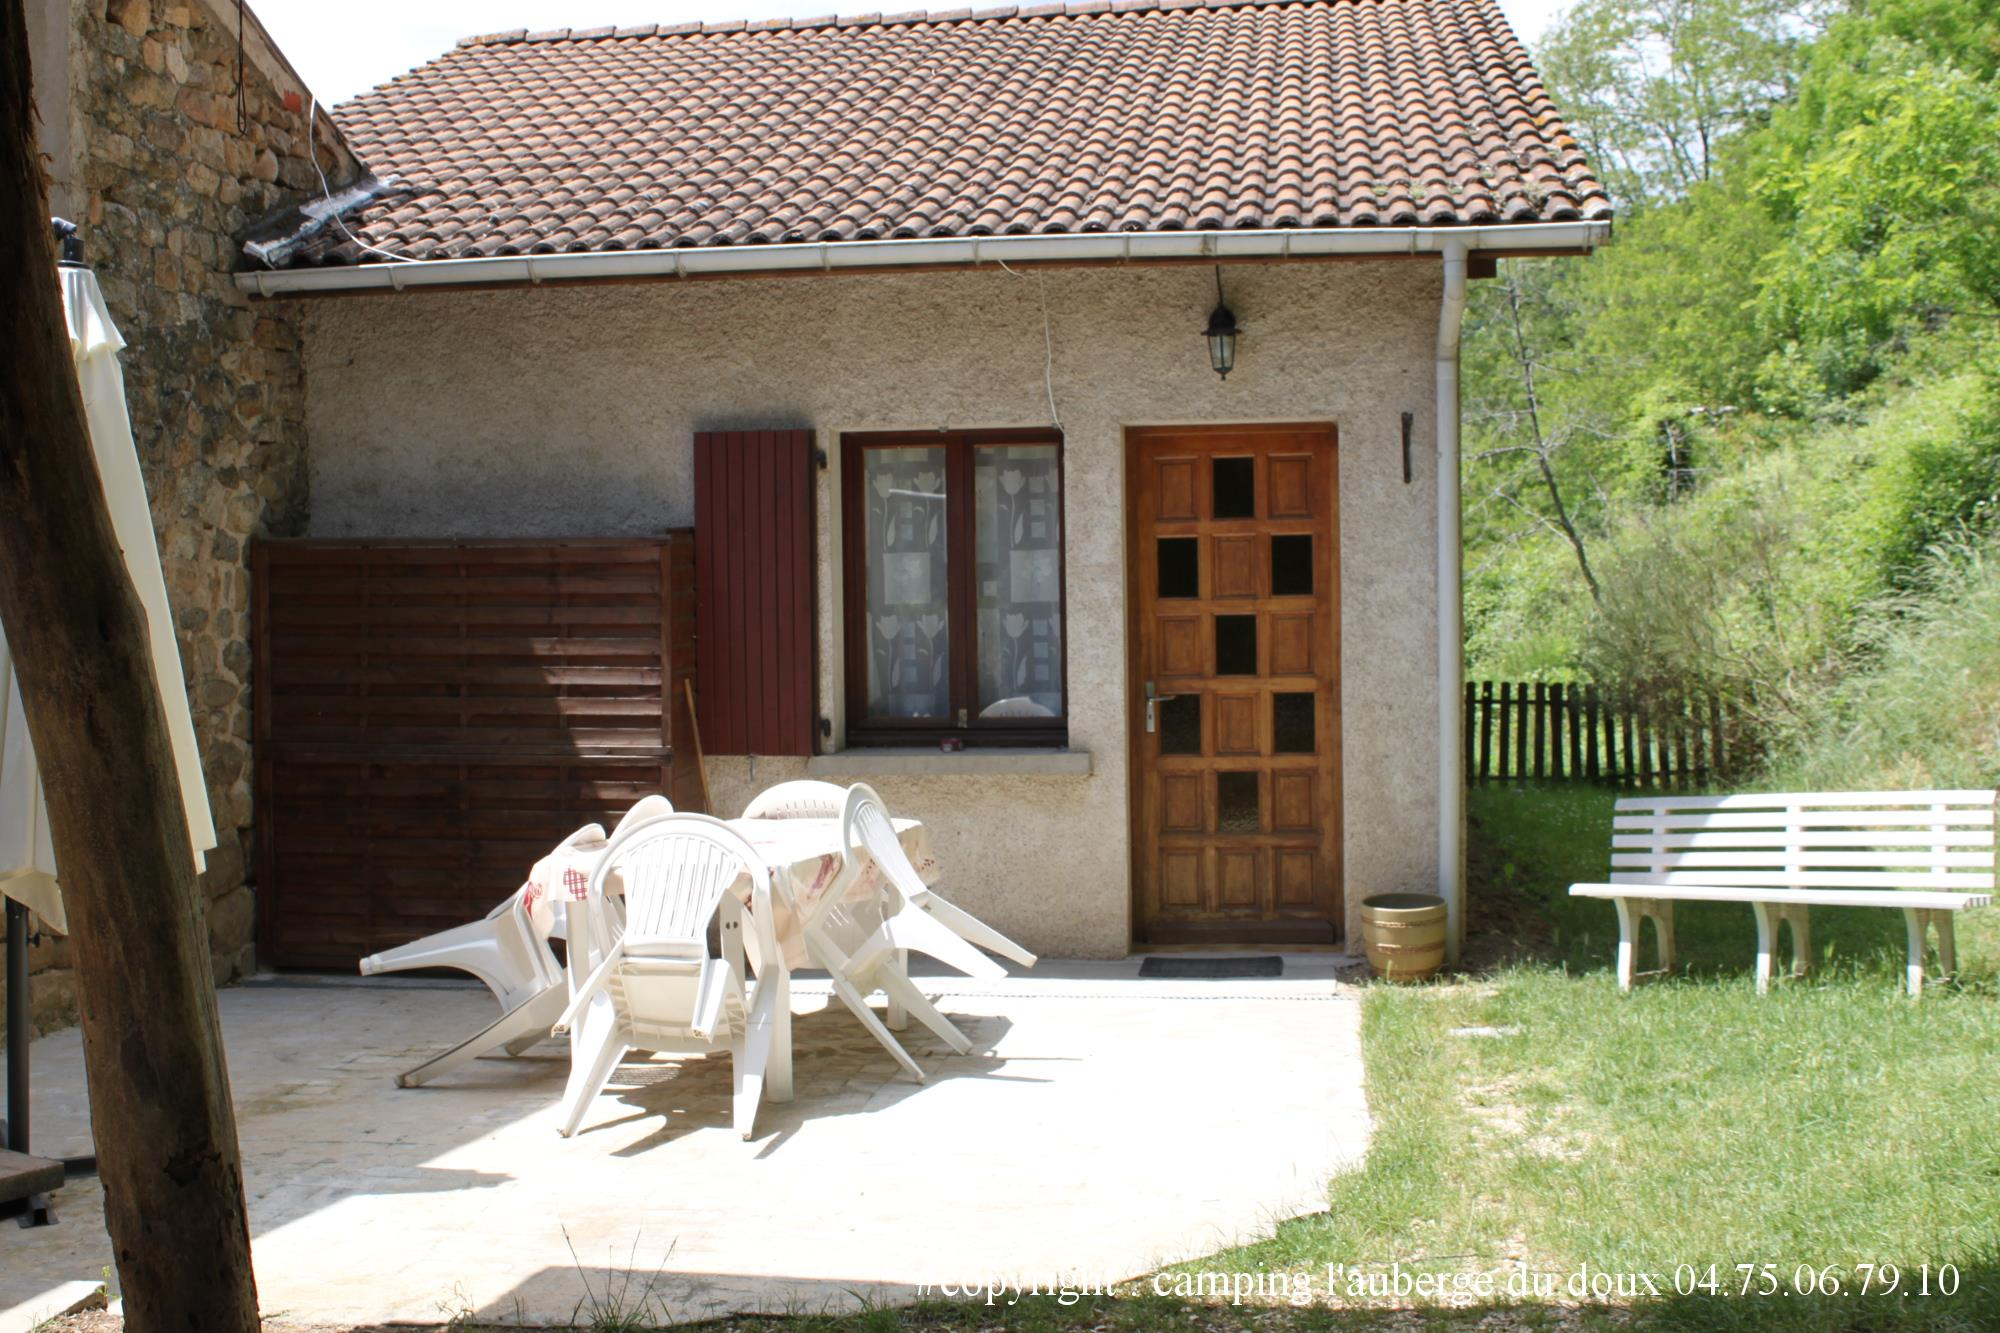 Accommodation - Holiday Home - Camping Les Berges Du Doux